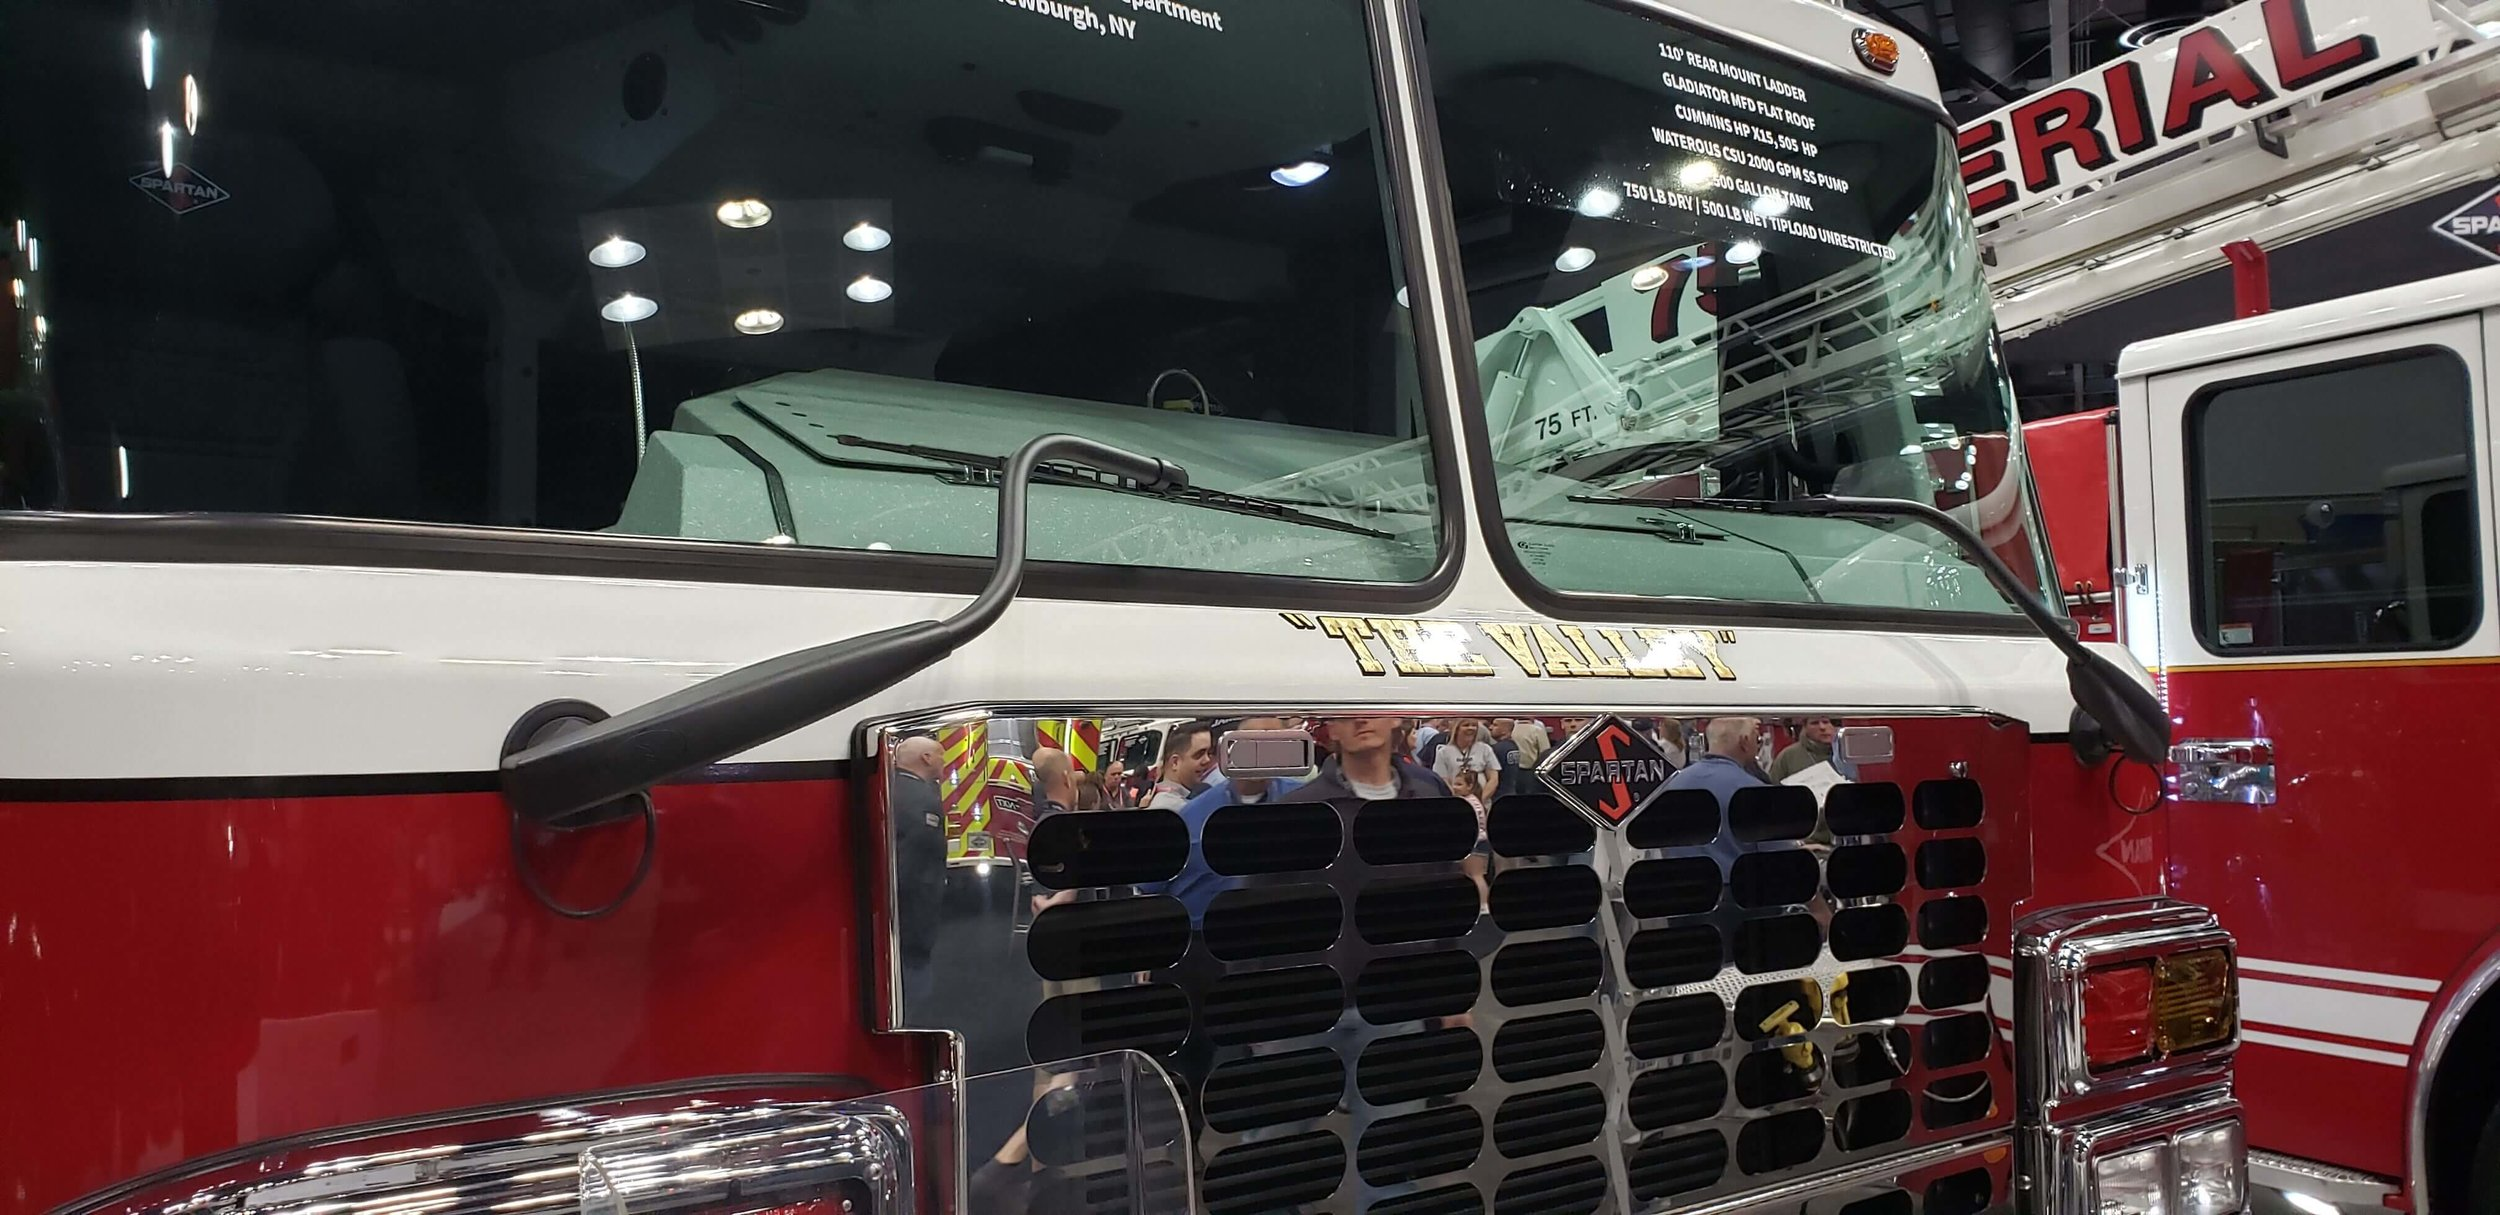 AM Equipment's  Heavy Duty Wiper System  on a Spartan Cab